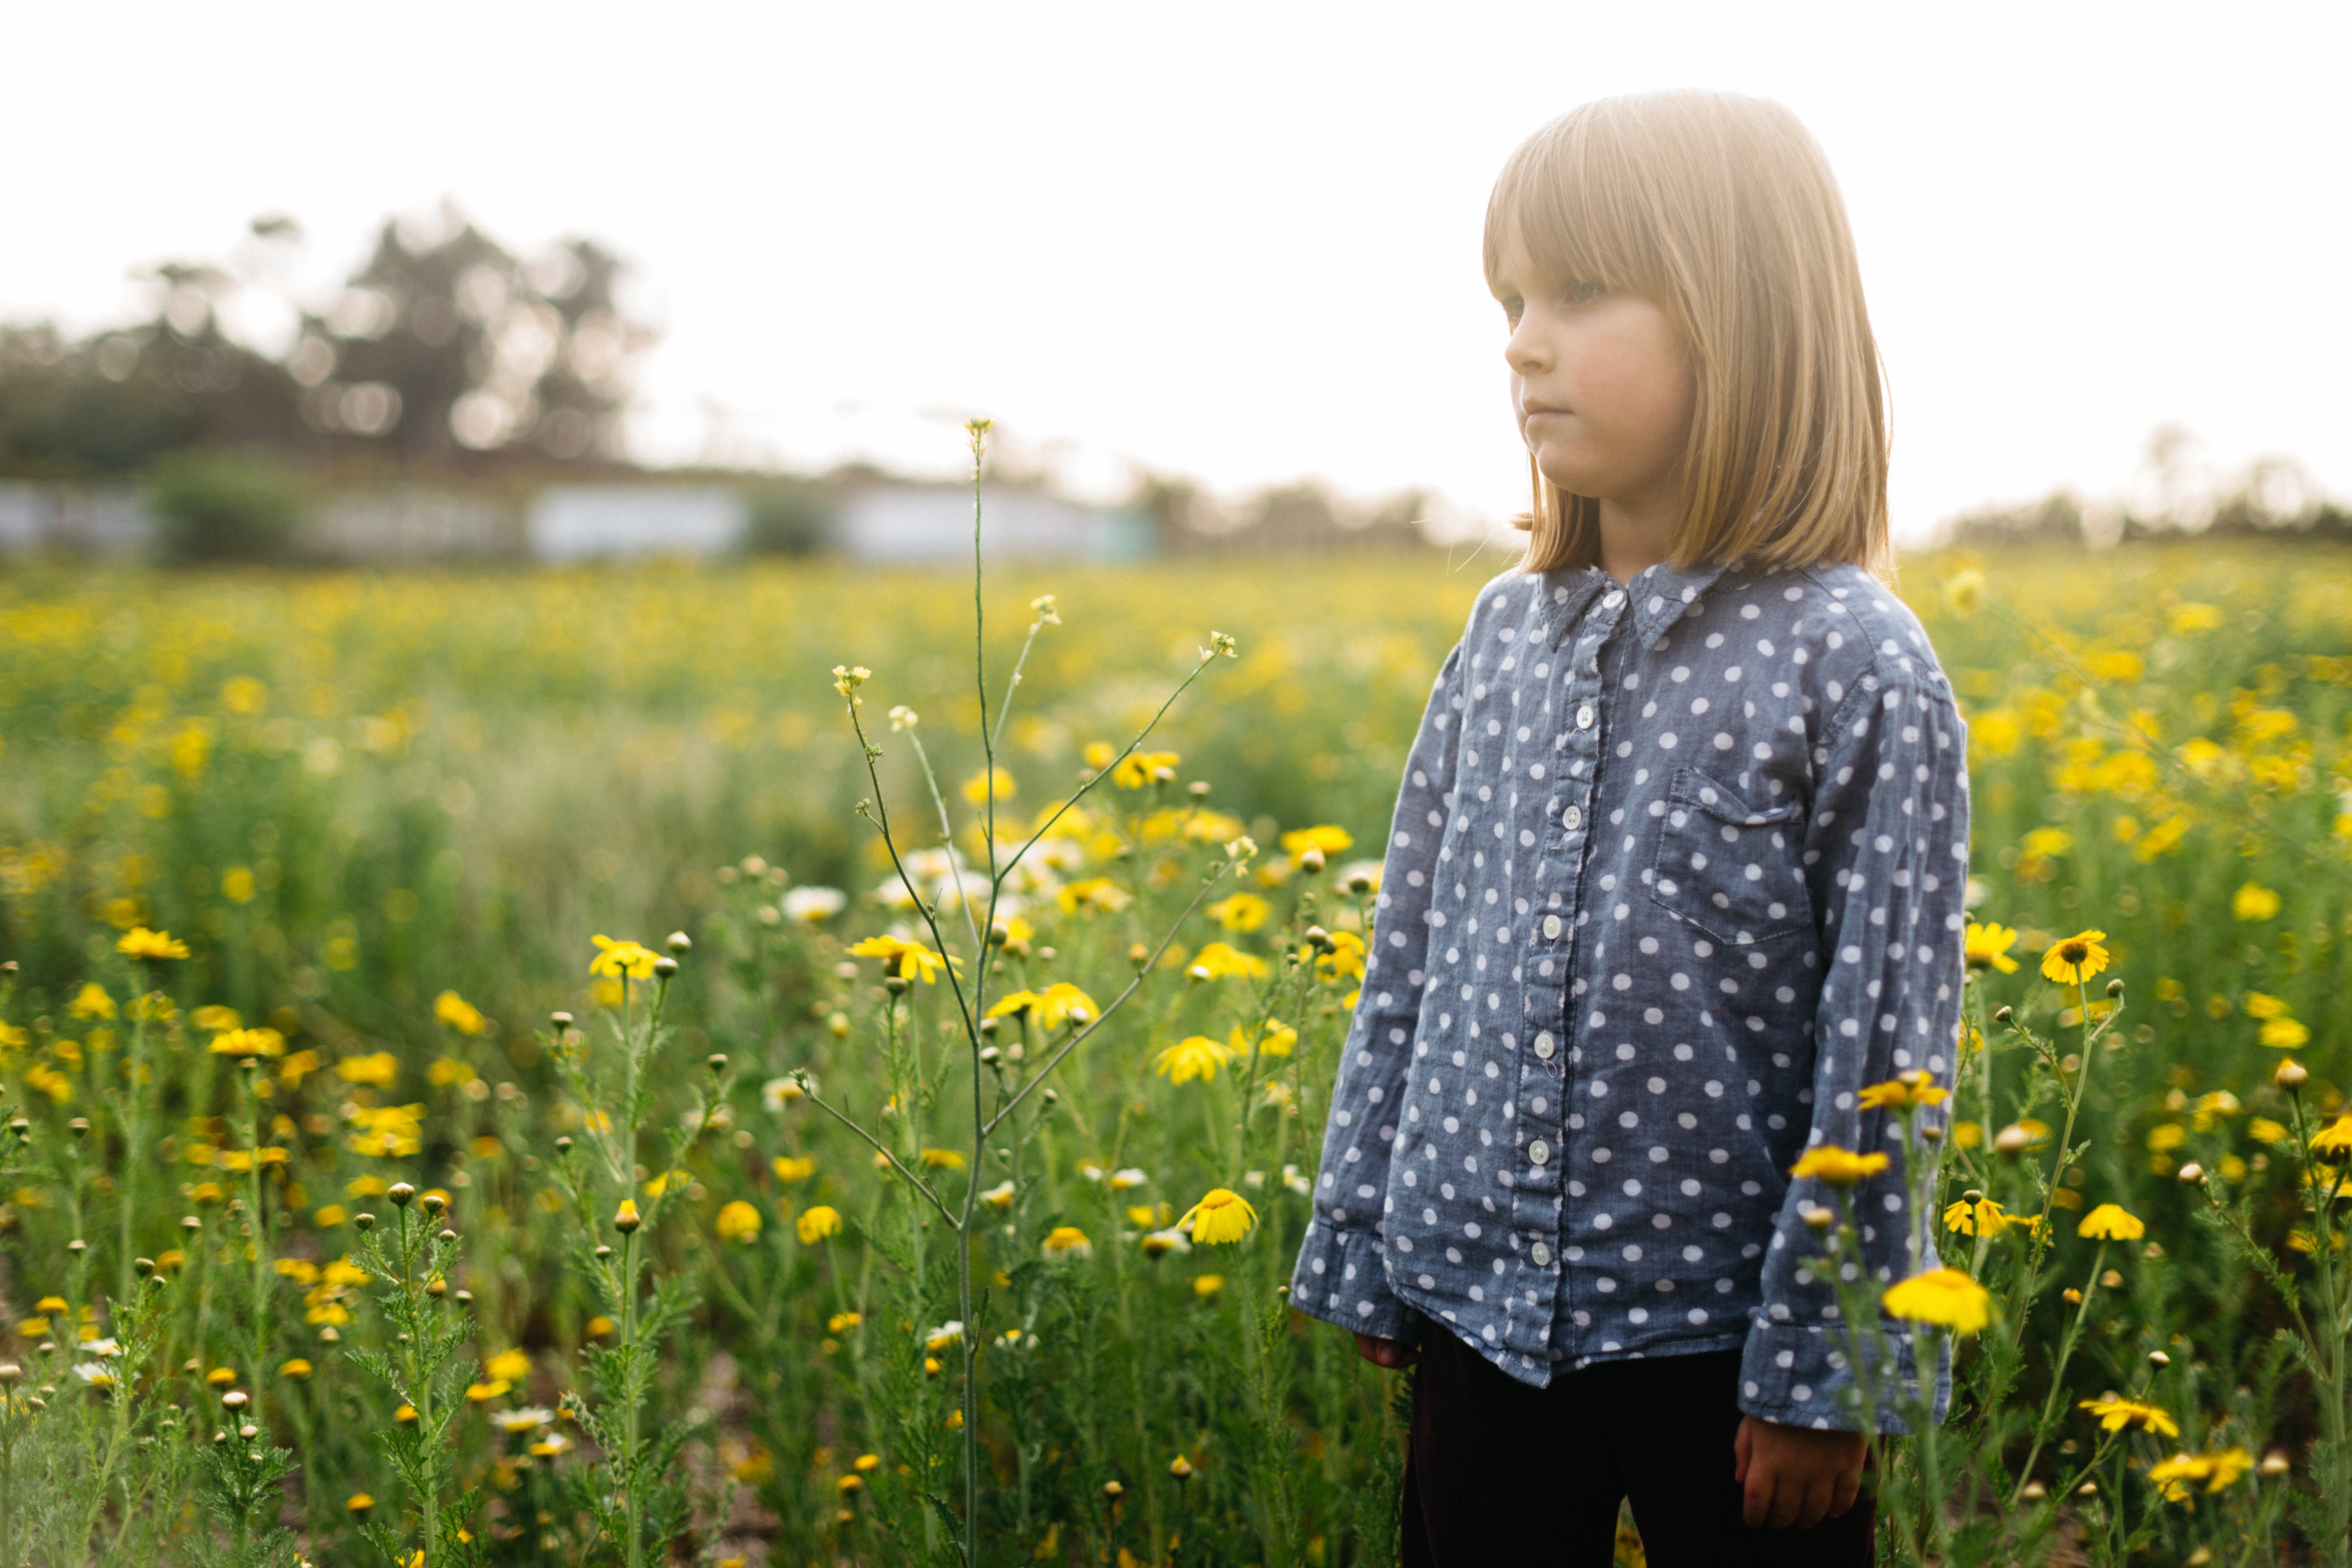 girl standing surrounded by yellow flowers during daytime